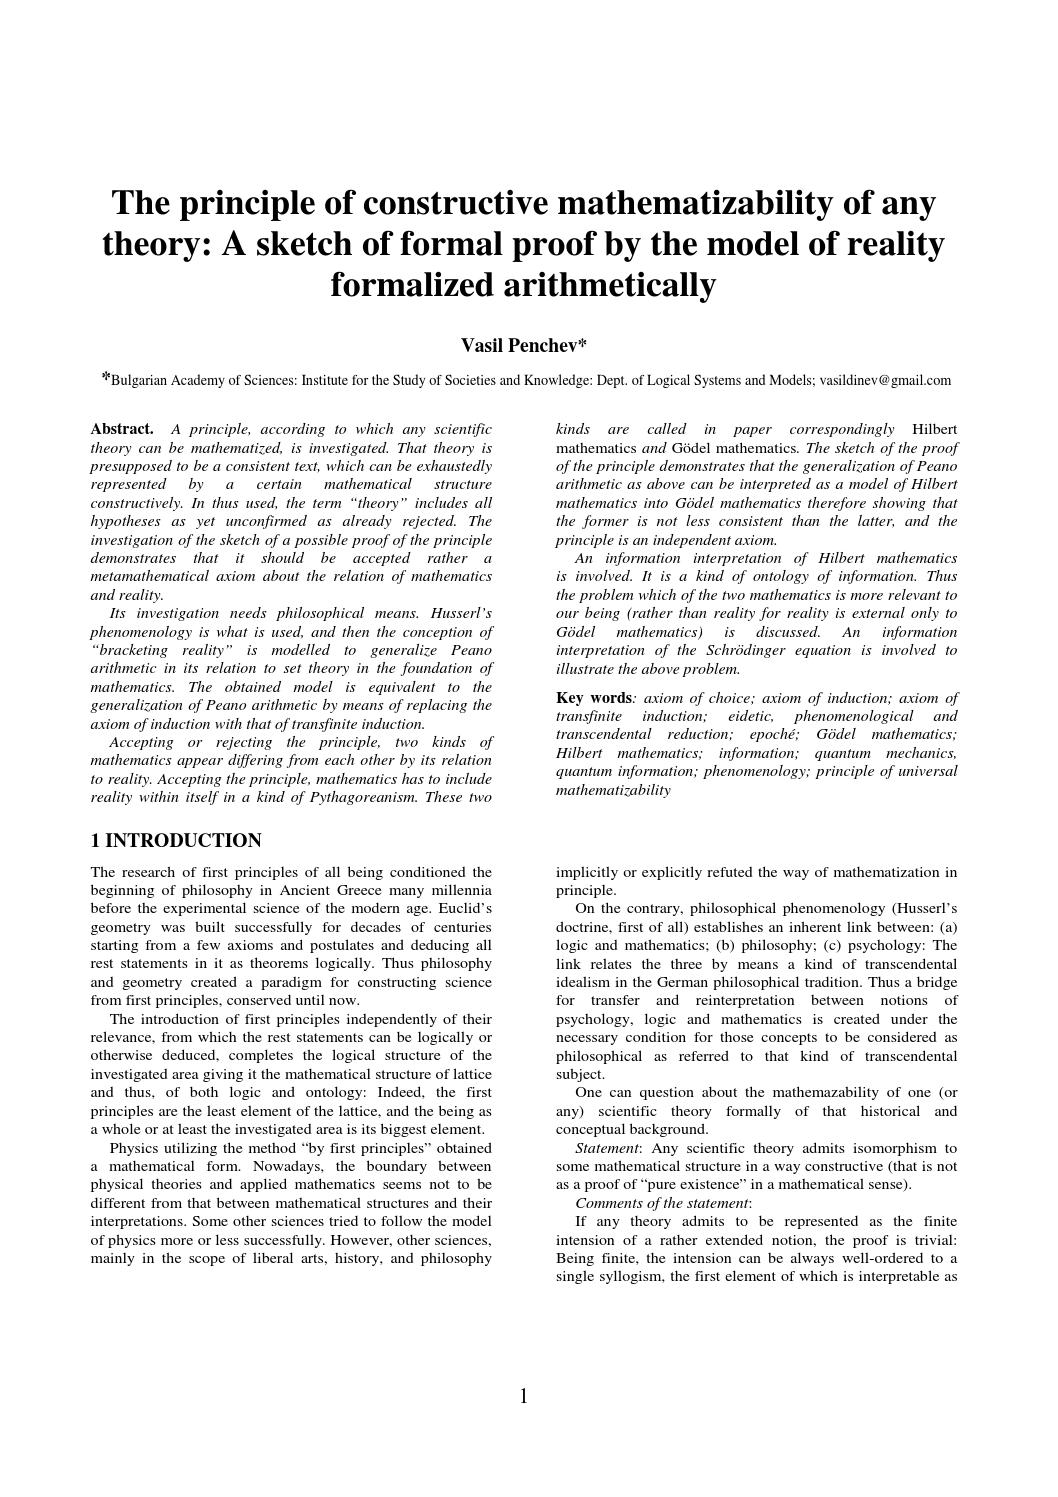 theories theoretical constructs concepts and models Clearly describe the framework, concepts, models, or specific theories that underpin your study this includes noting who the key theorists are in the field who have conducted research on the problem you are investigating and, when necessary, the historical context that supports the formulation of that theory.